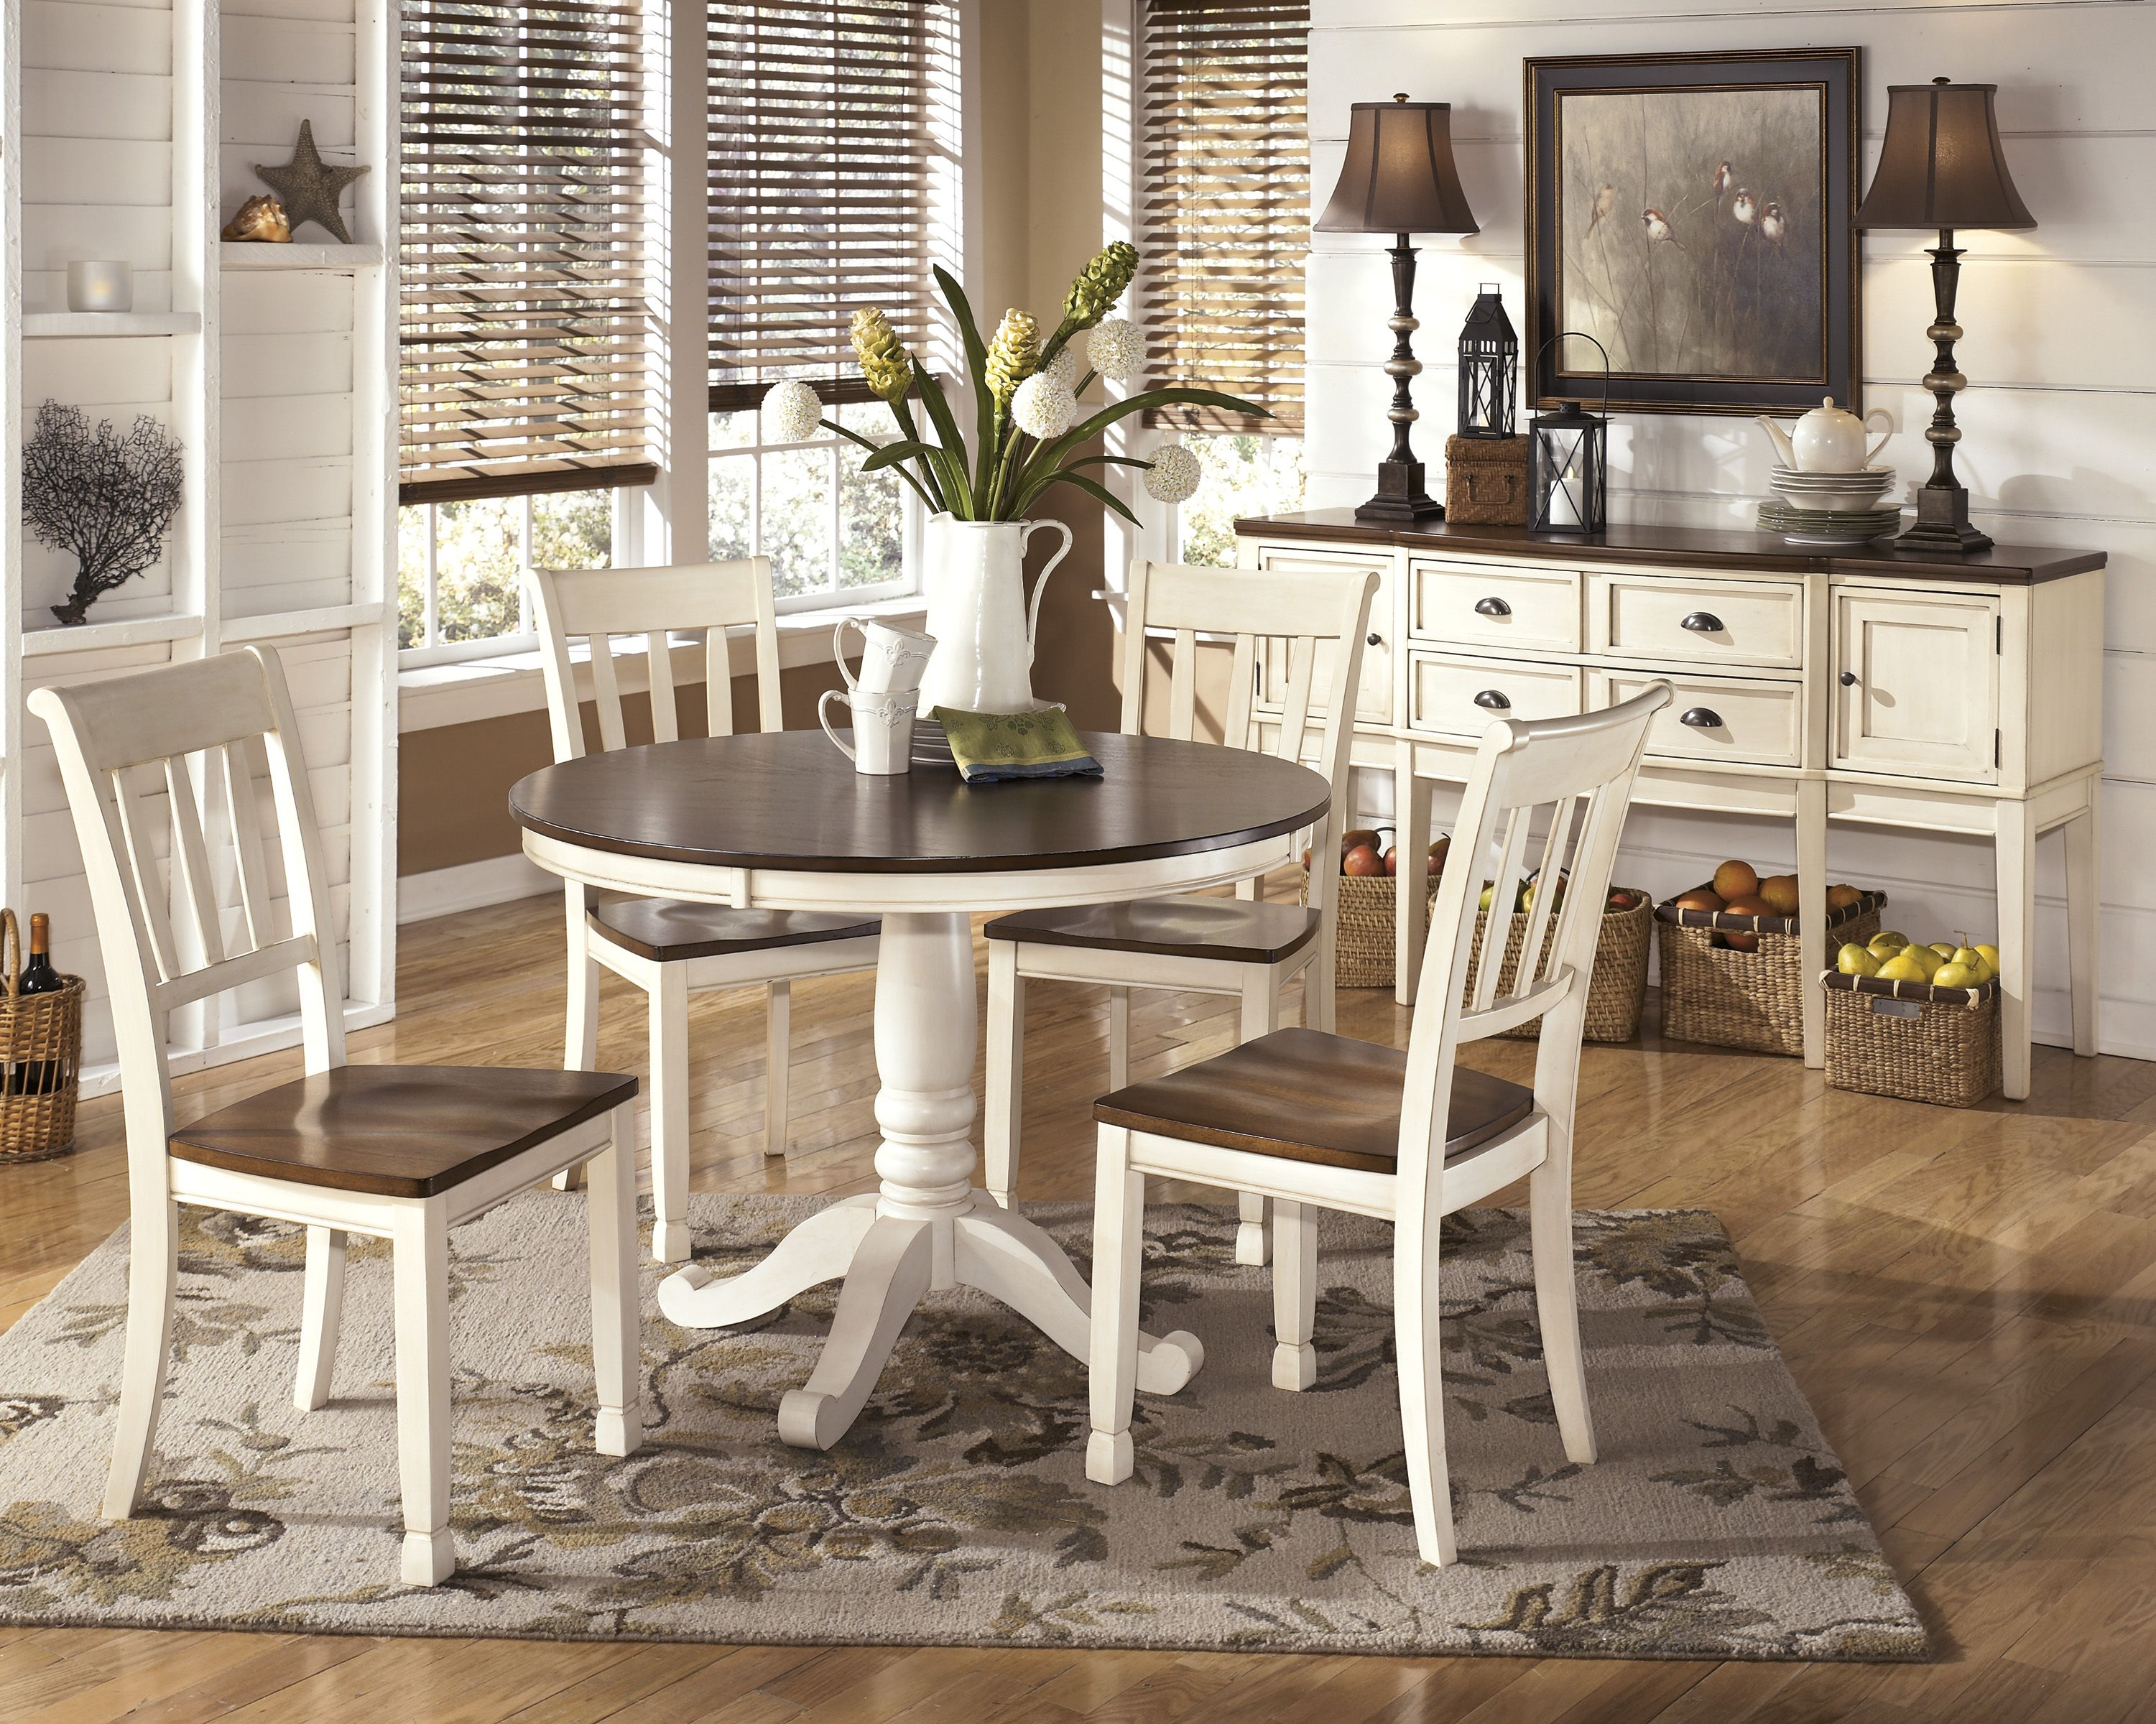 Round dining table and chairs for 4  Casual Round Table ud W x ud D x ud H Casual Rectangle Table